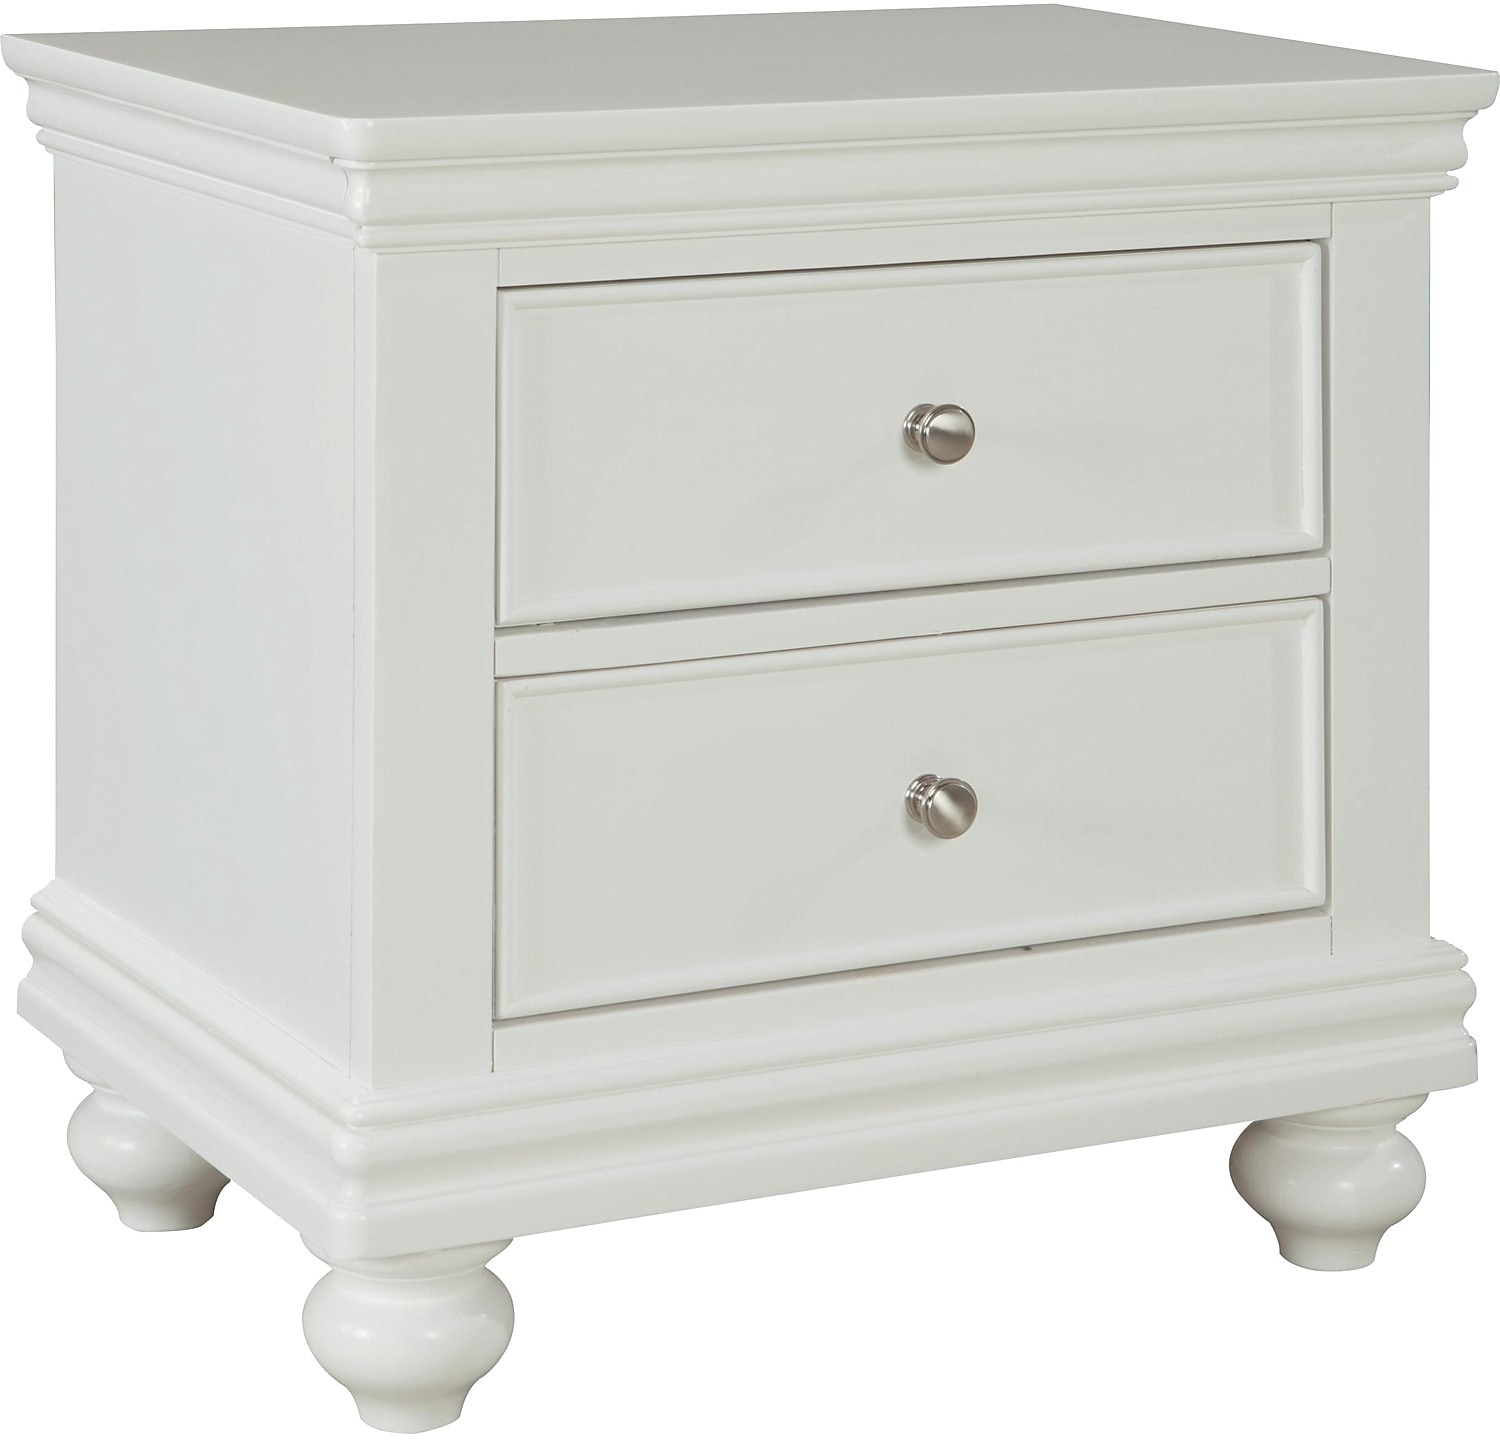 Bridgeport Nightstand – White